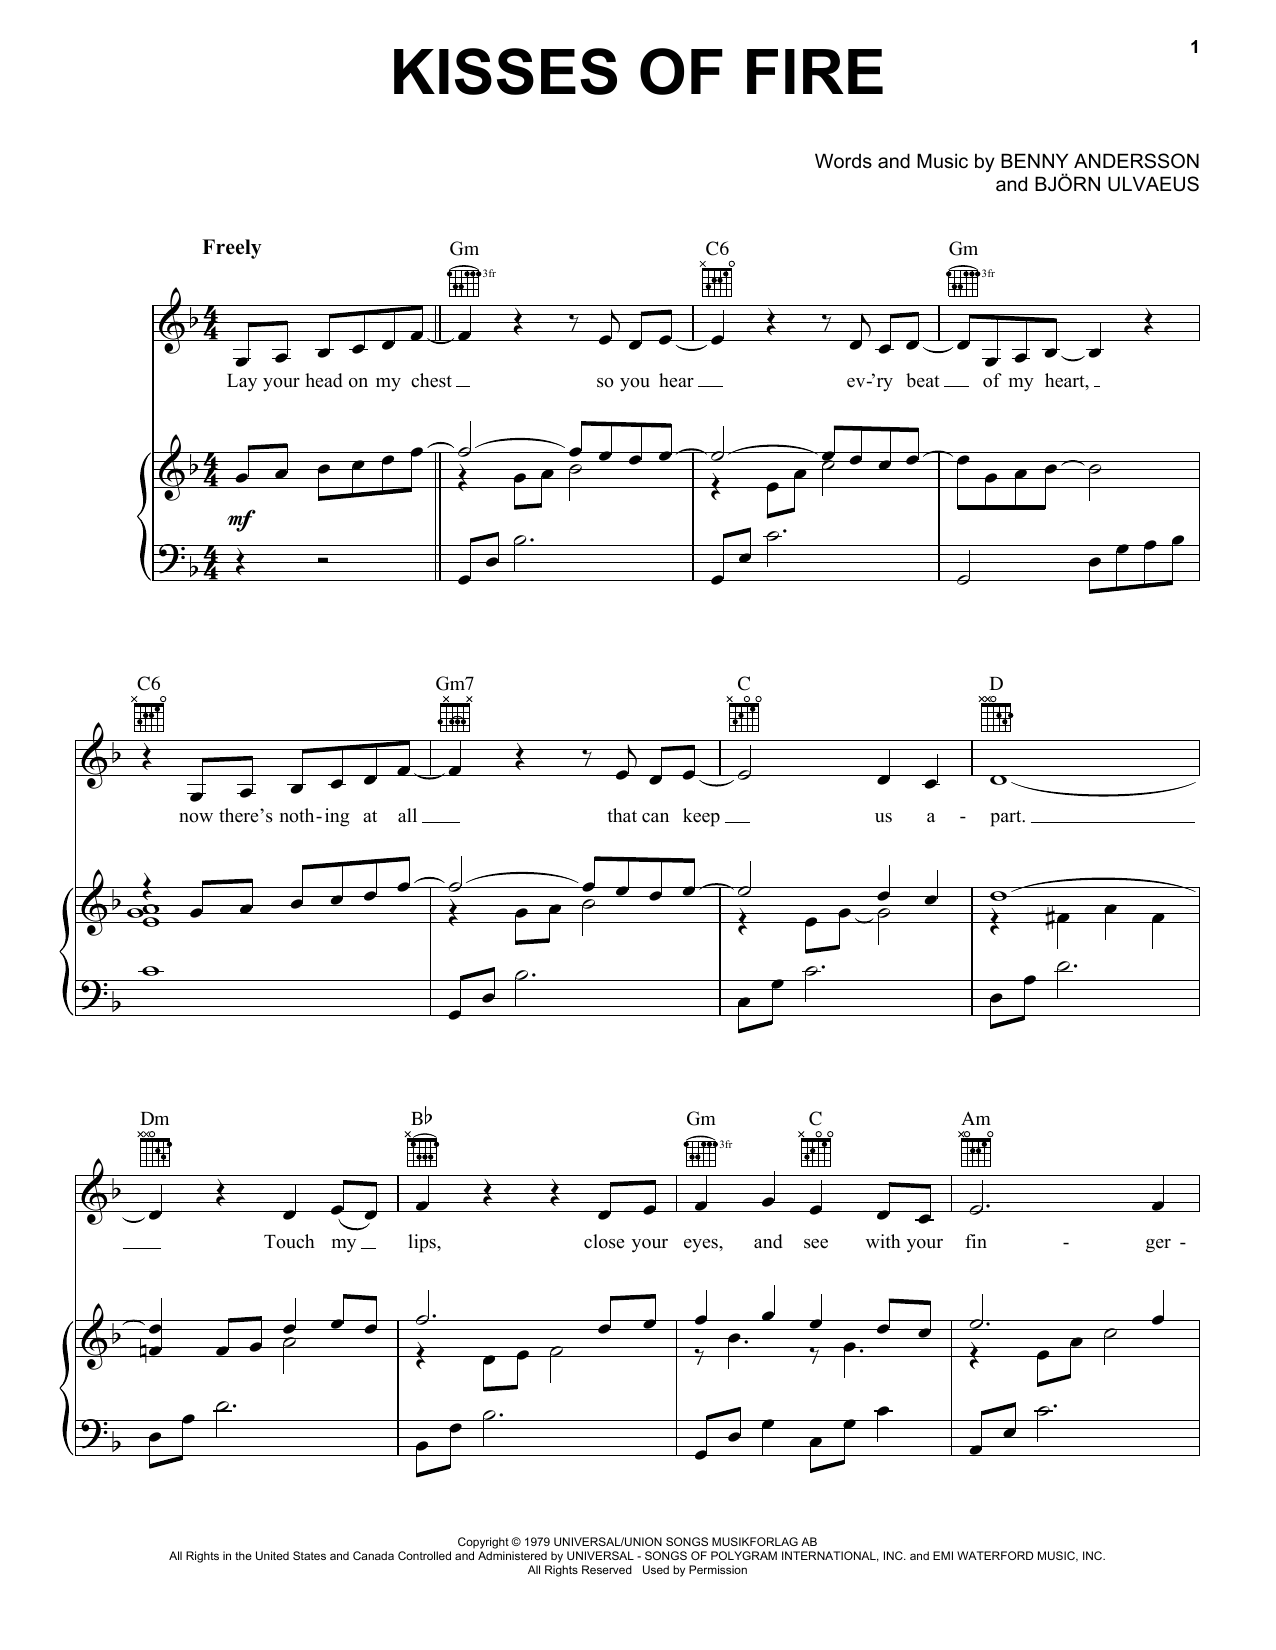 ABBA Kisses Of Fire (from Mamma Mia! Here We Go Again) sheet music notes and chords. Download Printable PDF.